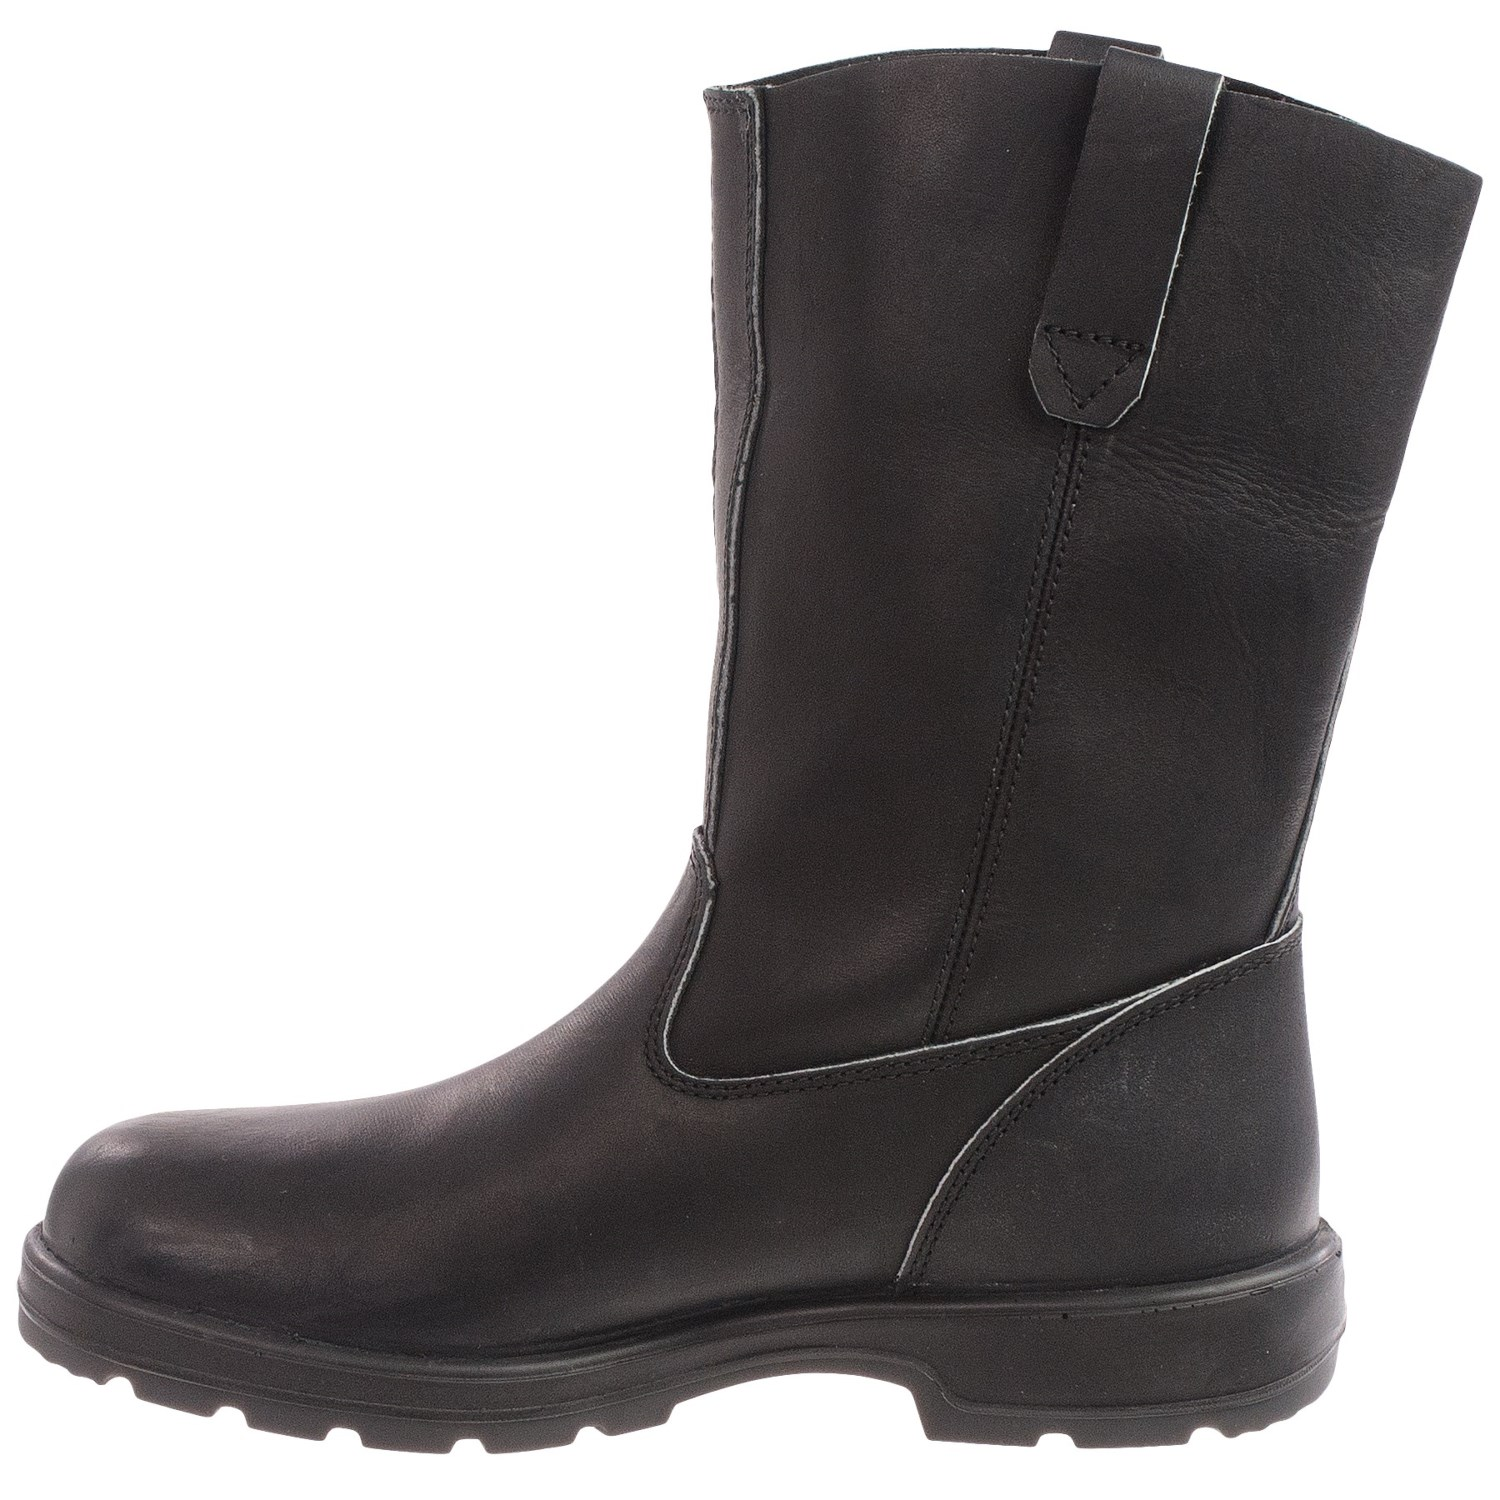 blundstone 546 rigger boots for and 9870m